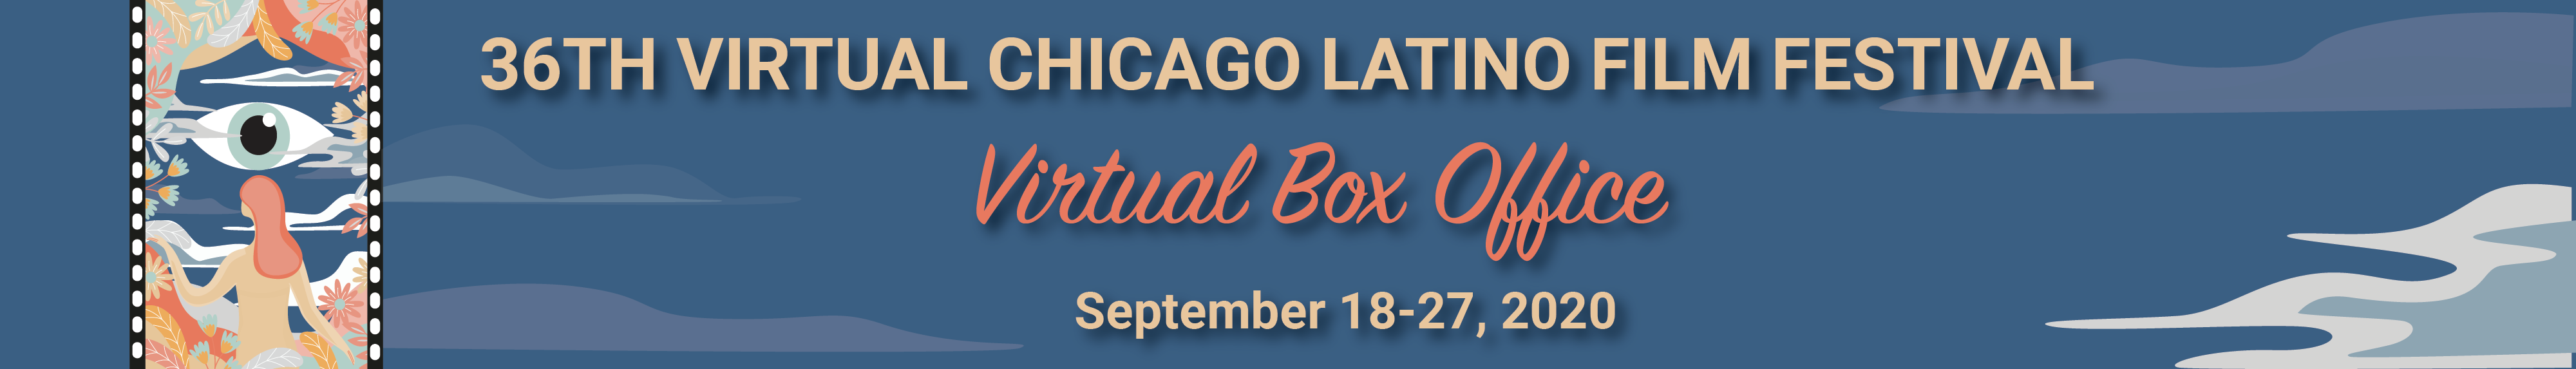 Welcome to the 36th Virtual Chicago Latino Film Festival!